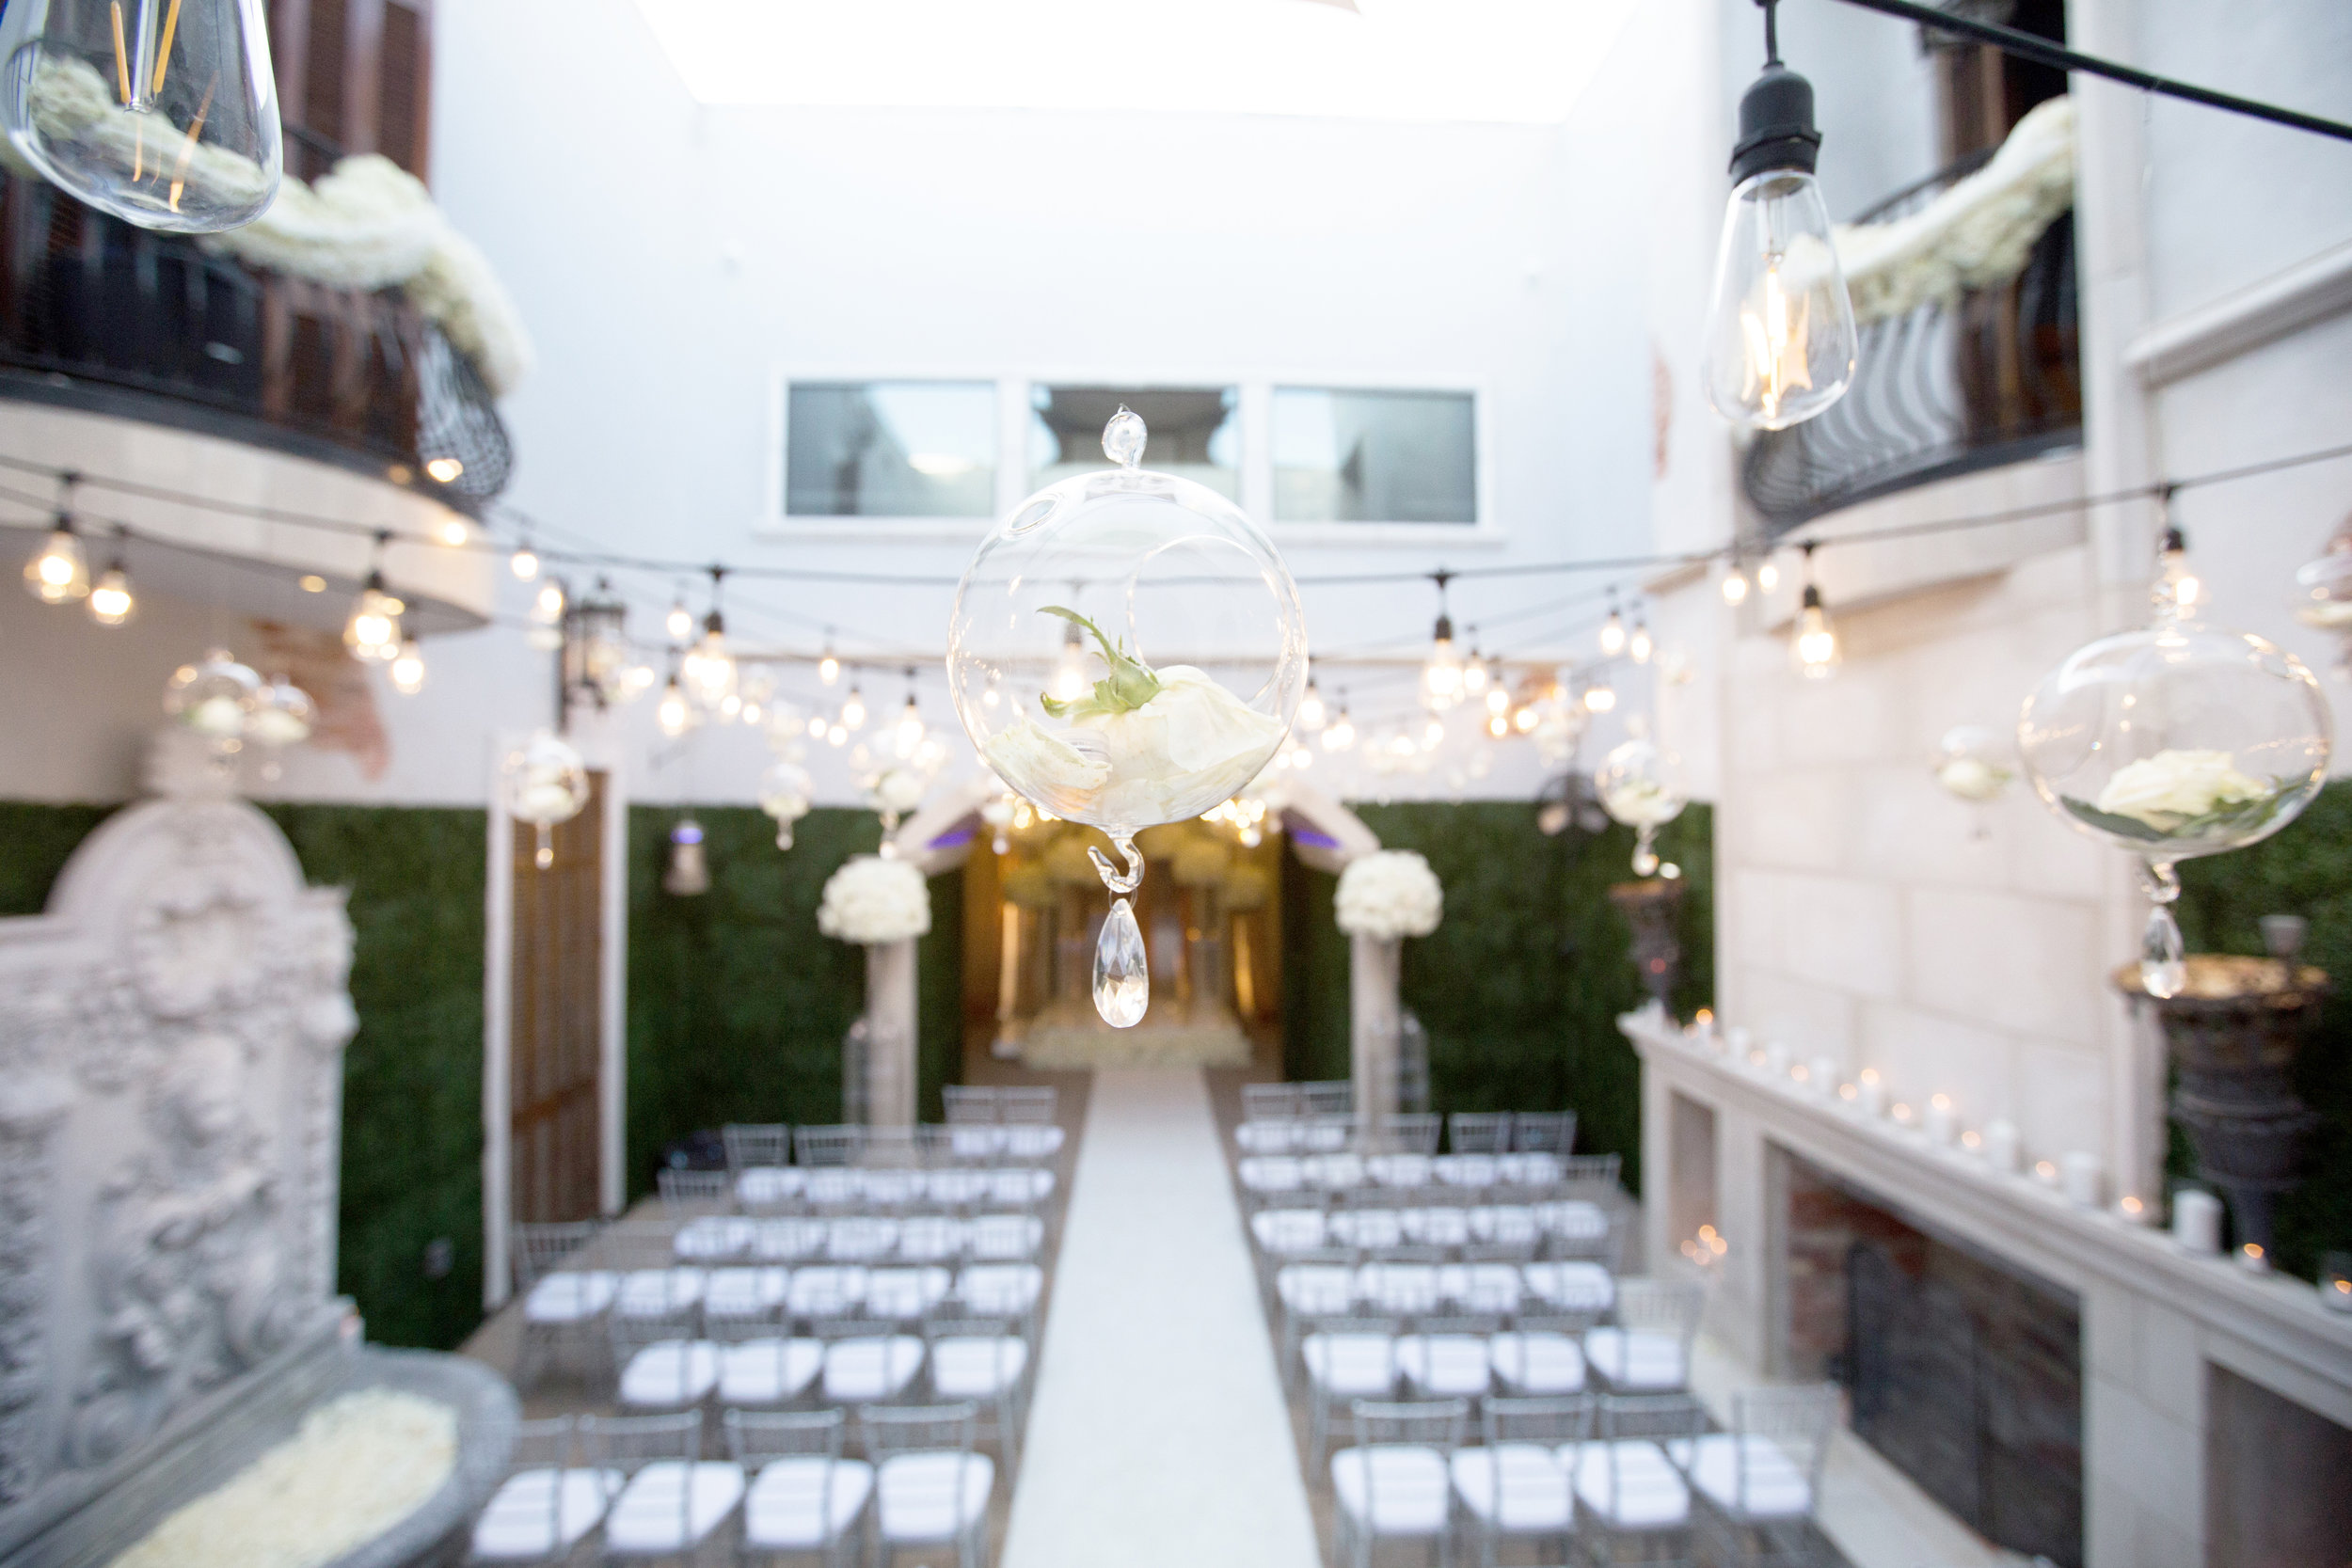 Ceremony Details - Dallas, Tx - Fall Wedding - Julian Leaver Events